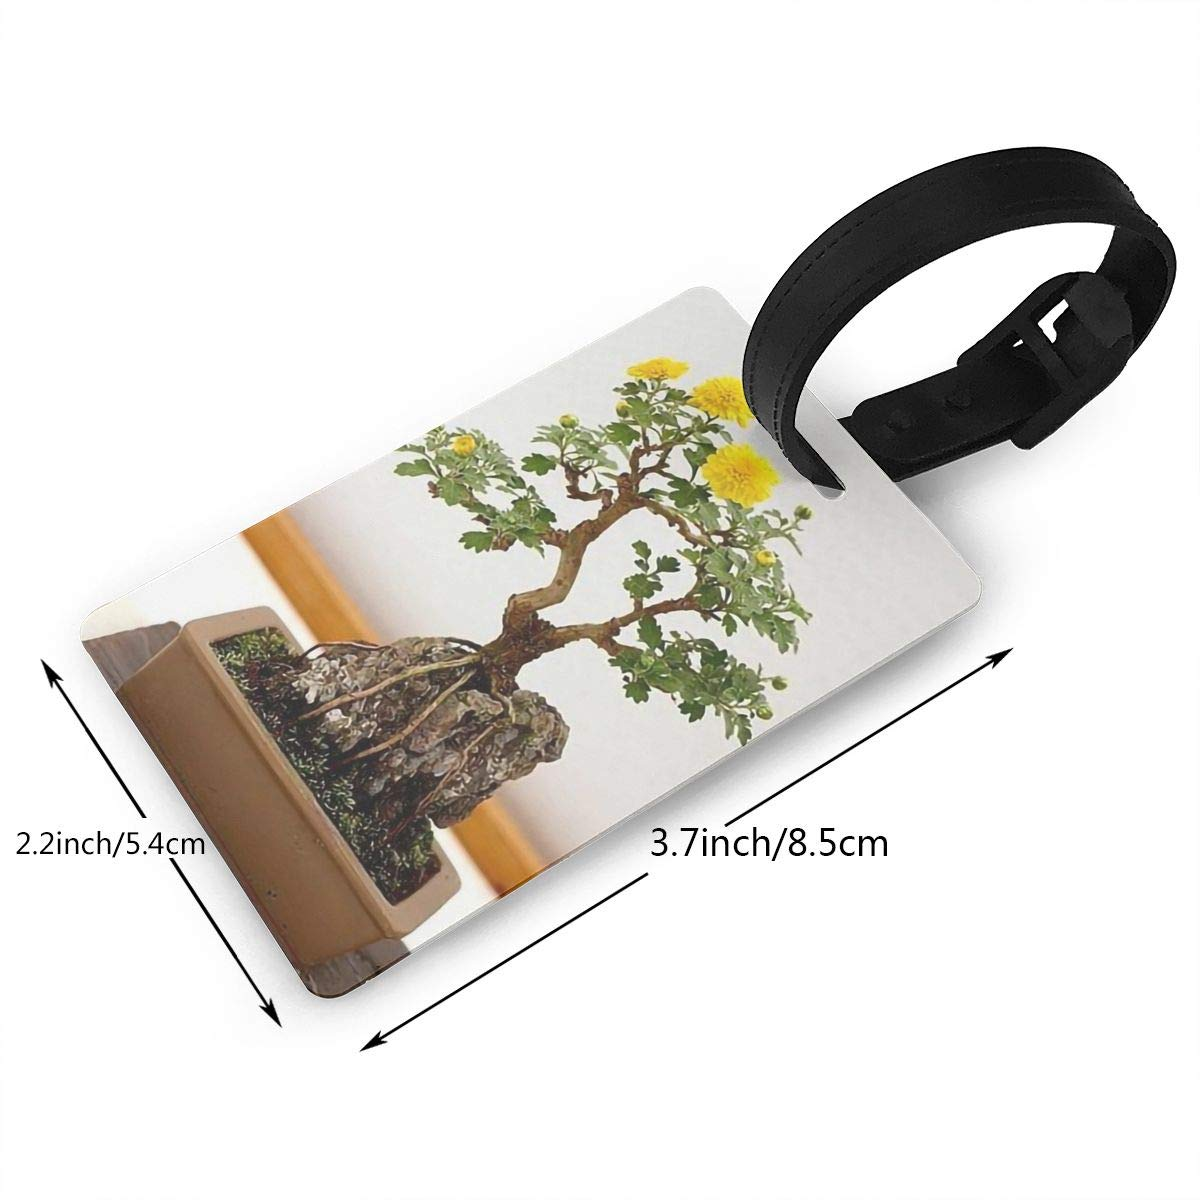 Bonsai Handbag Tag For Travel Tags Accessories 2 Pack Luggage Tags